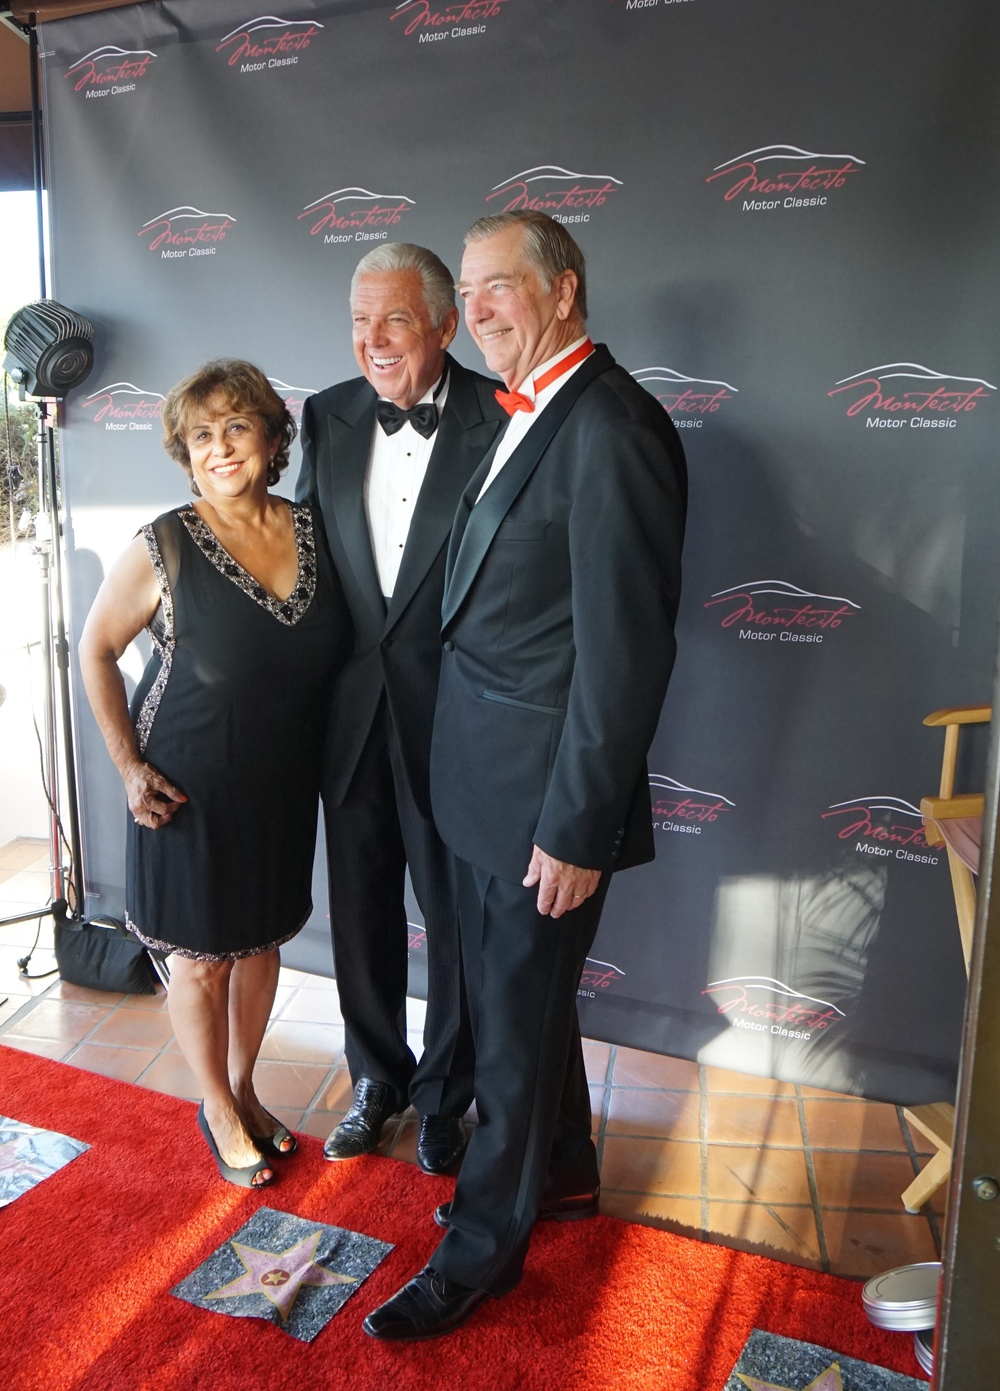 Co chairs Dolores Johnson and Dana Newquist Barry Meguiar, our special guest.